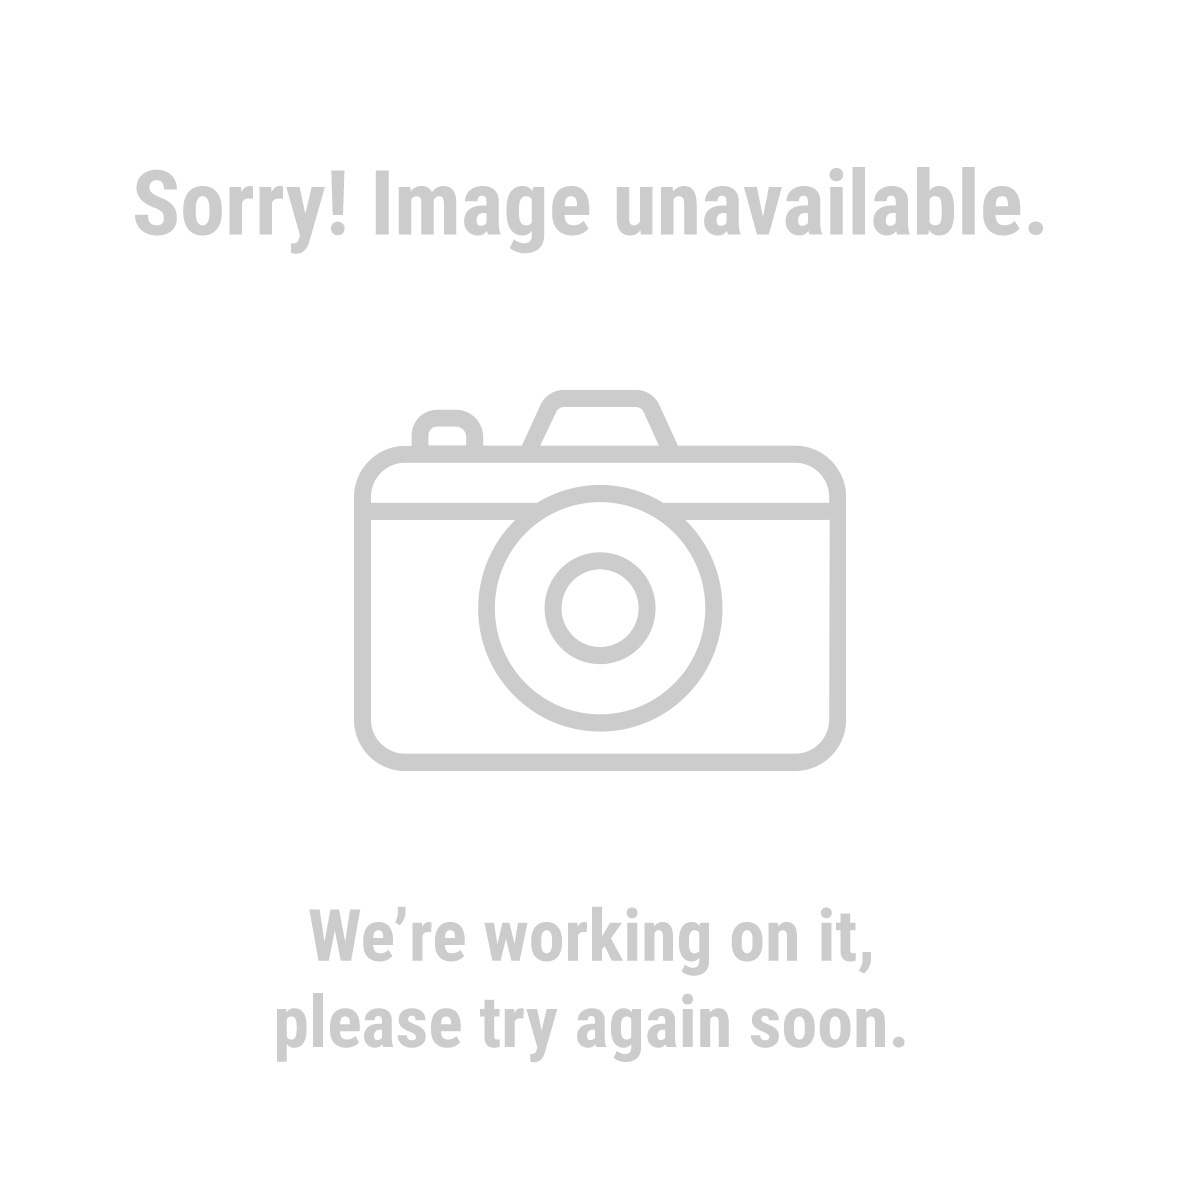 Reusable Corded Earplugs